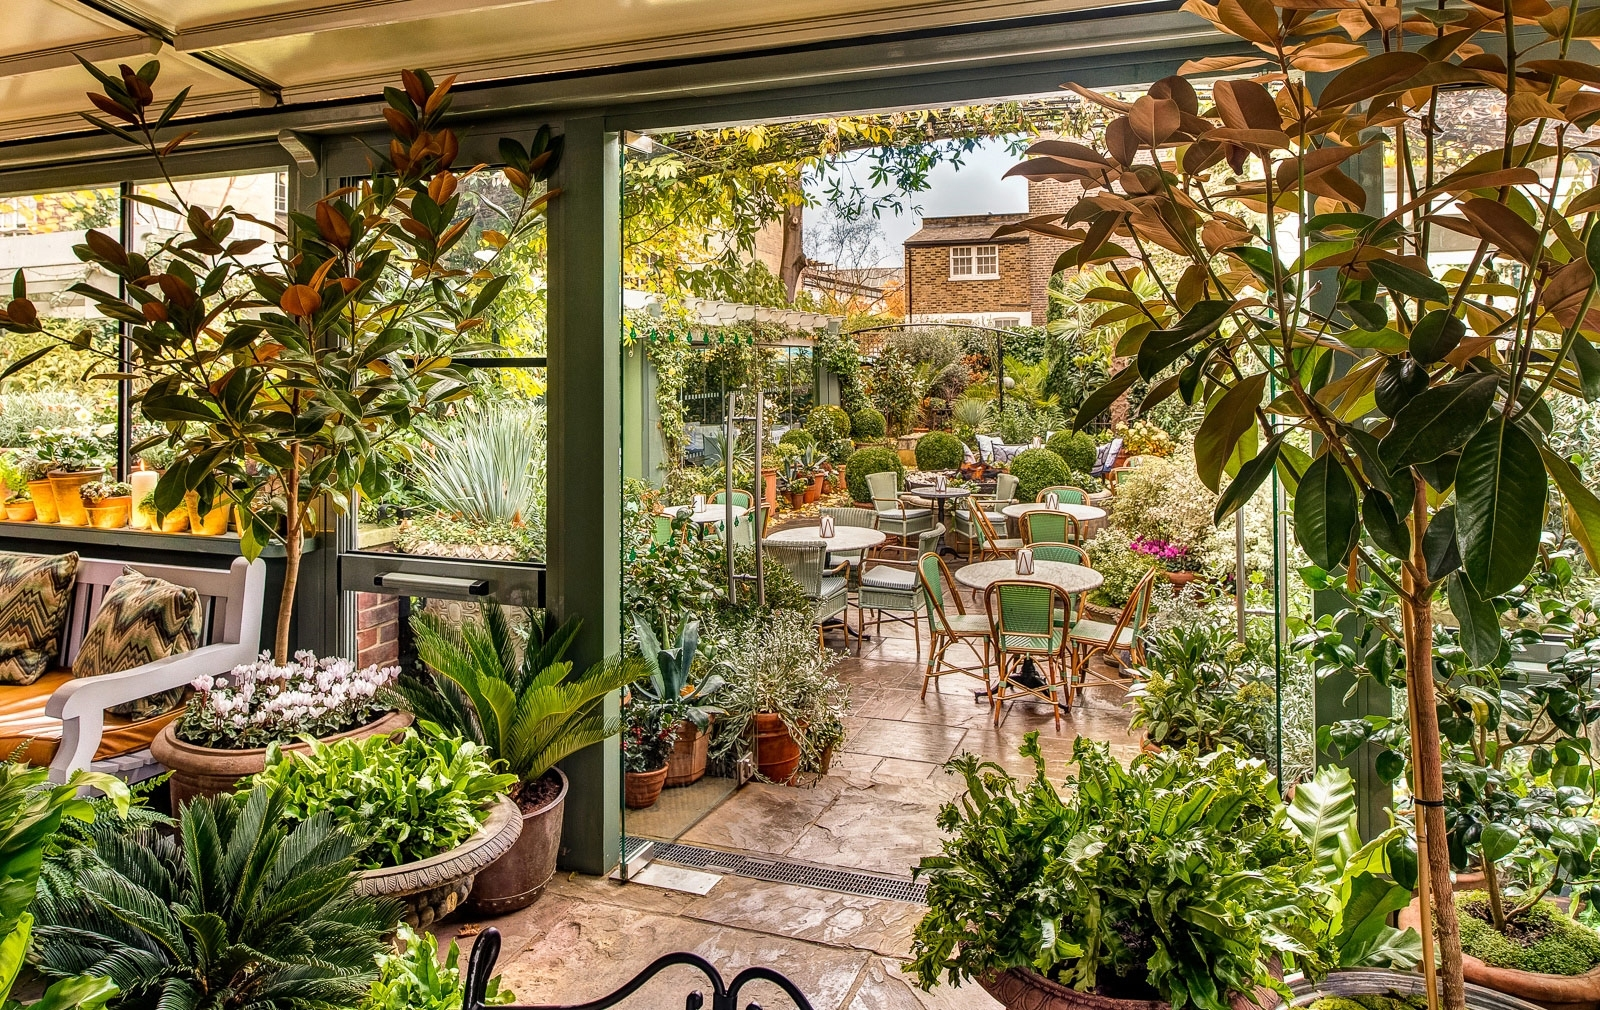 7 London Restaurants With Beautiful Gardens inside Garden House Cafe Opening Times